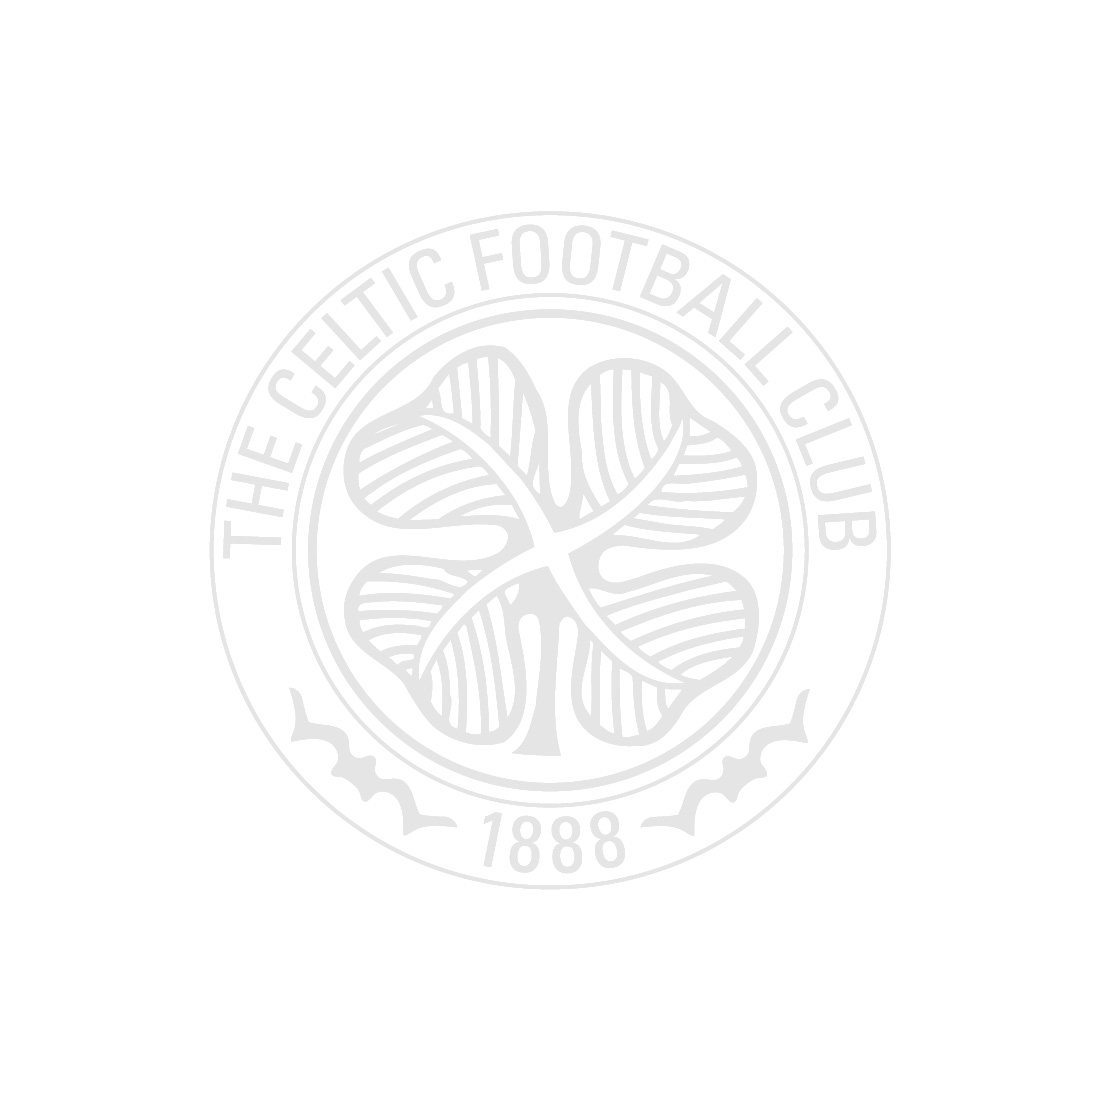 Celtic Griffiths Signed Match Used Football